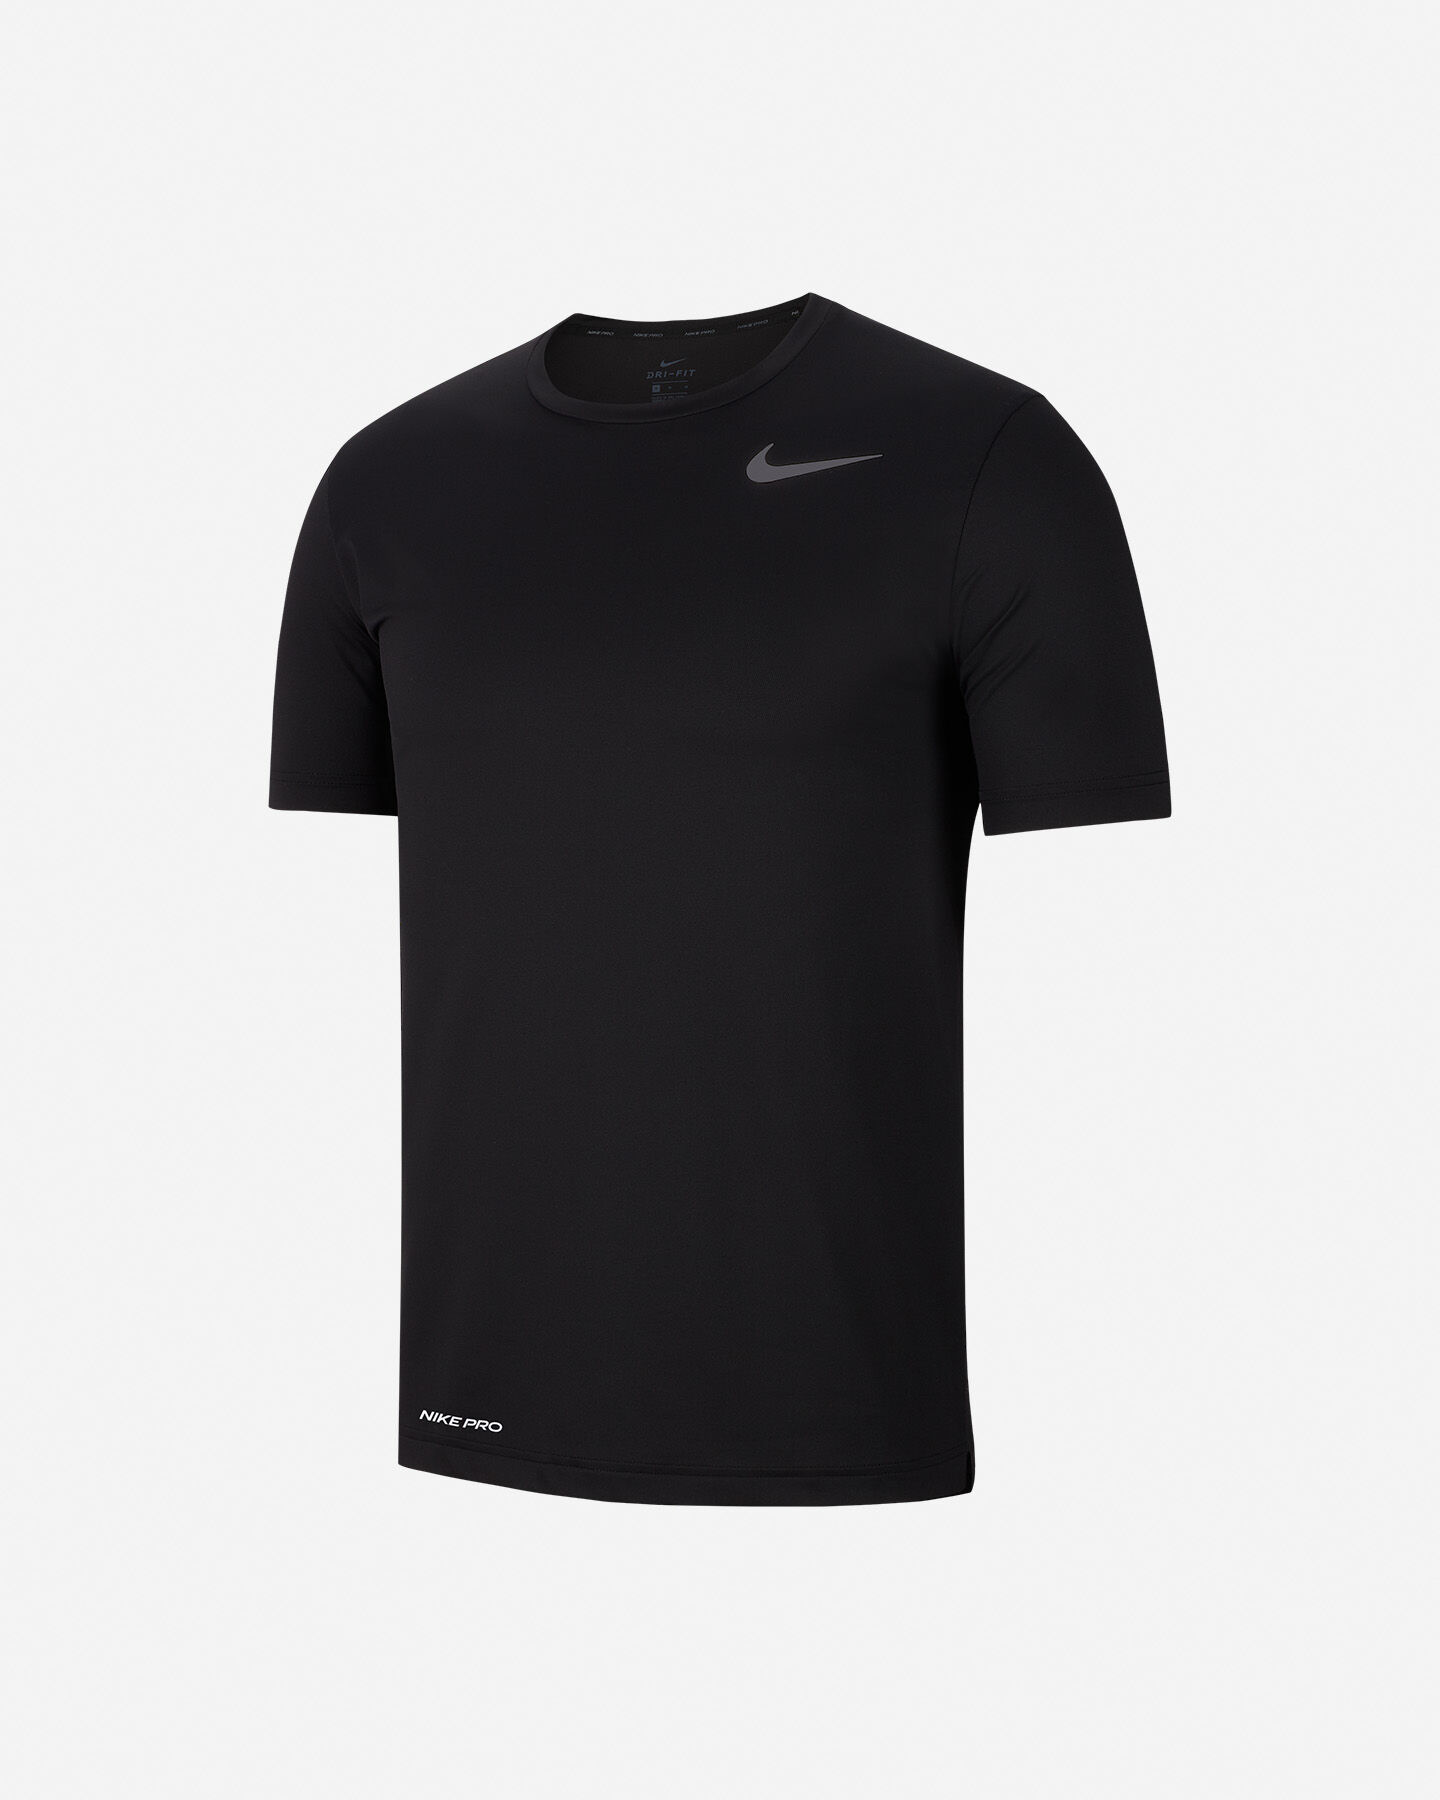 T-Shirt training NIKE PRO HYPER DRY M S5164272 scatto 0